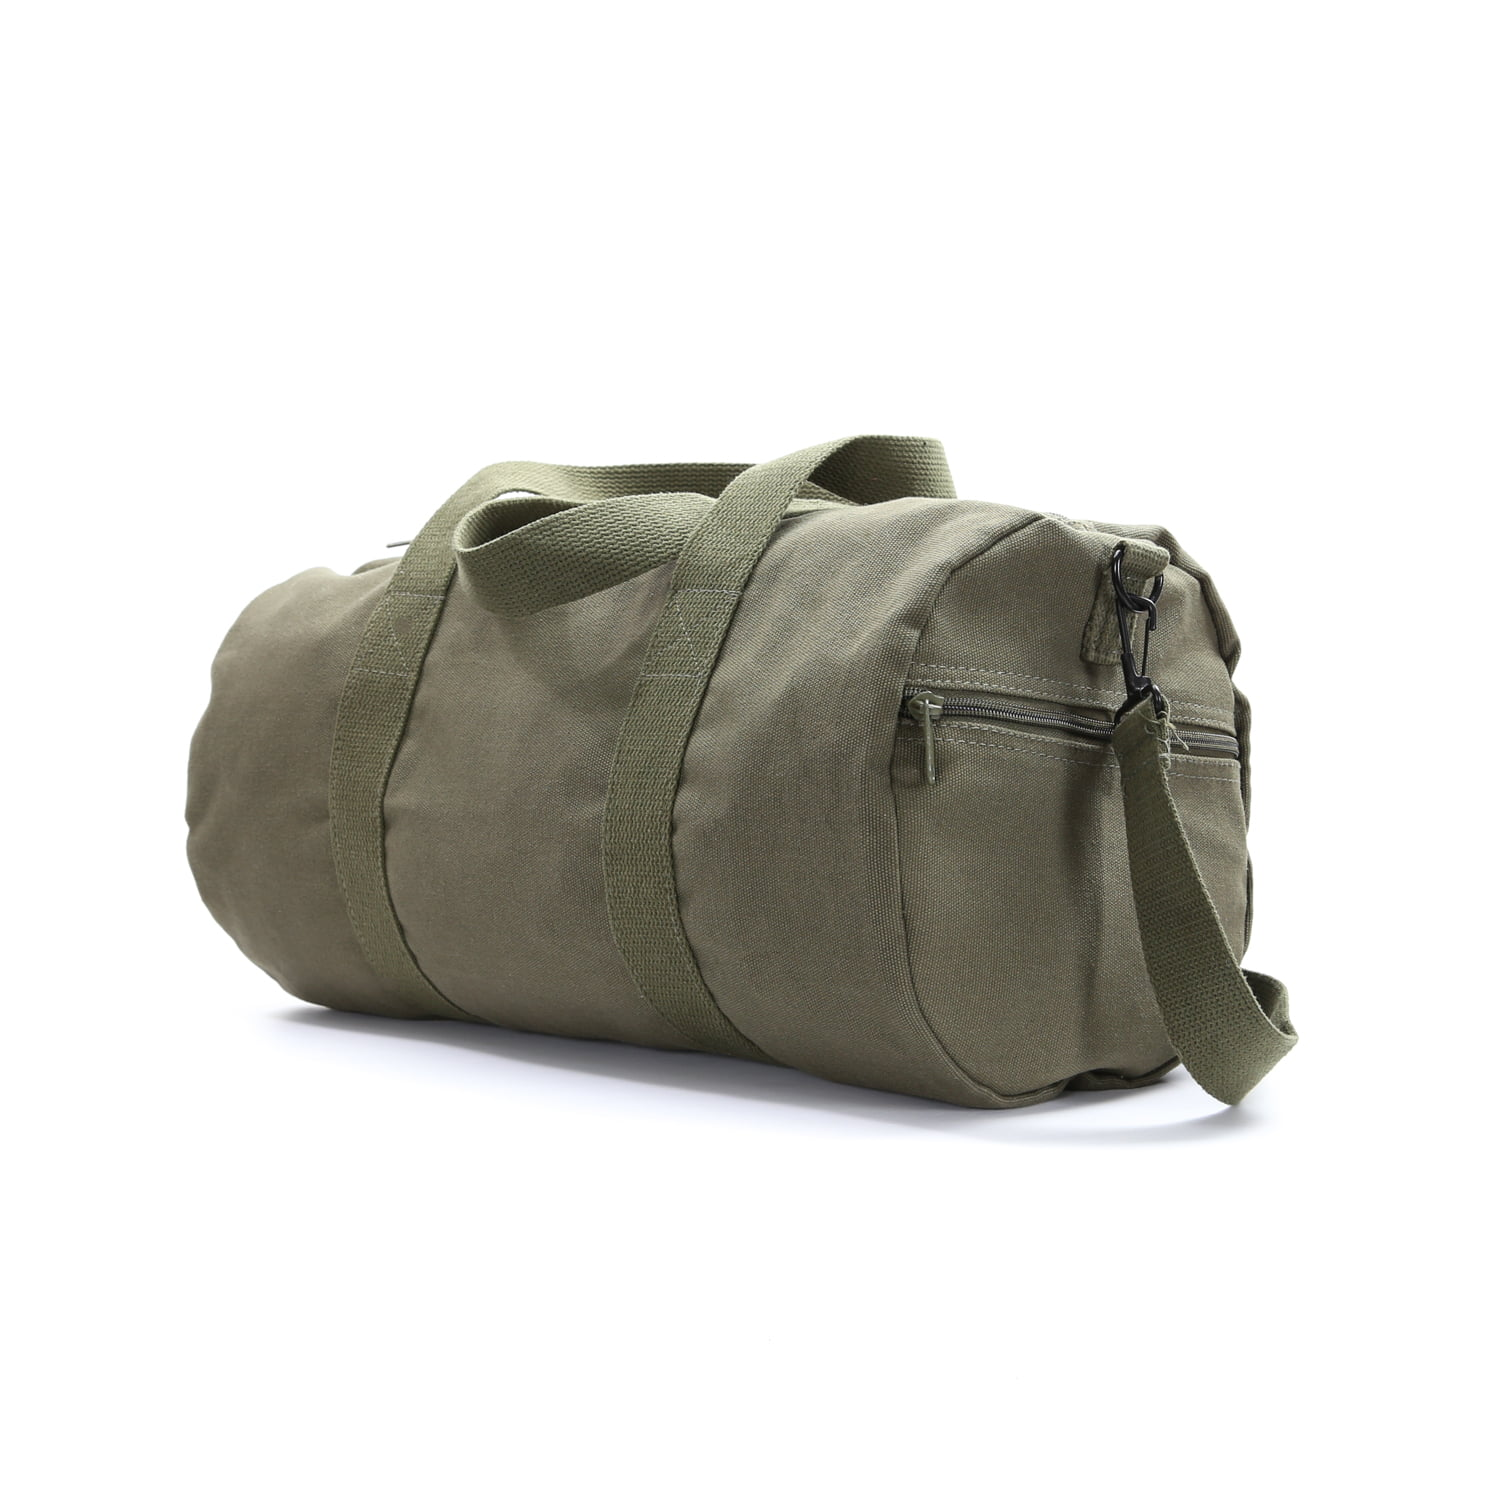 d29f1bb547 Army Force Gear WWII Military Jeep Invasion Star Duffel Tote Gym Bag World  War 2 - Walmart.com